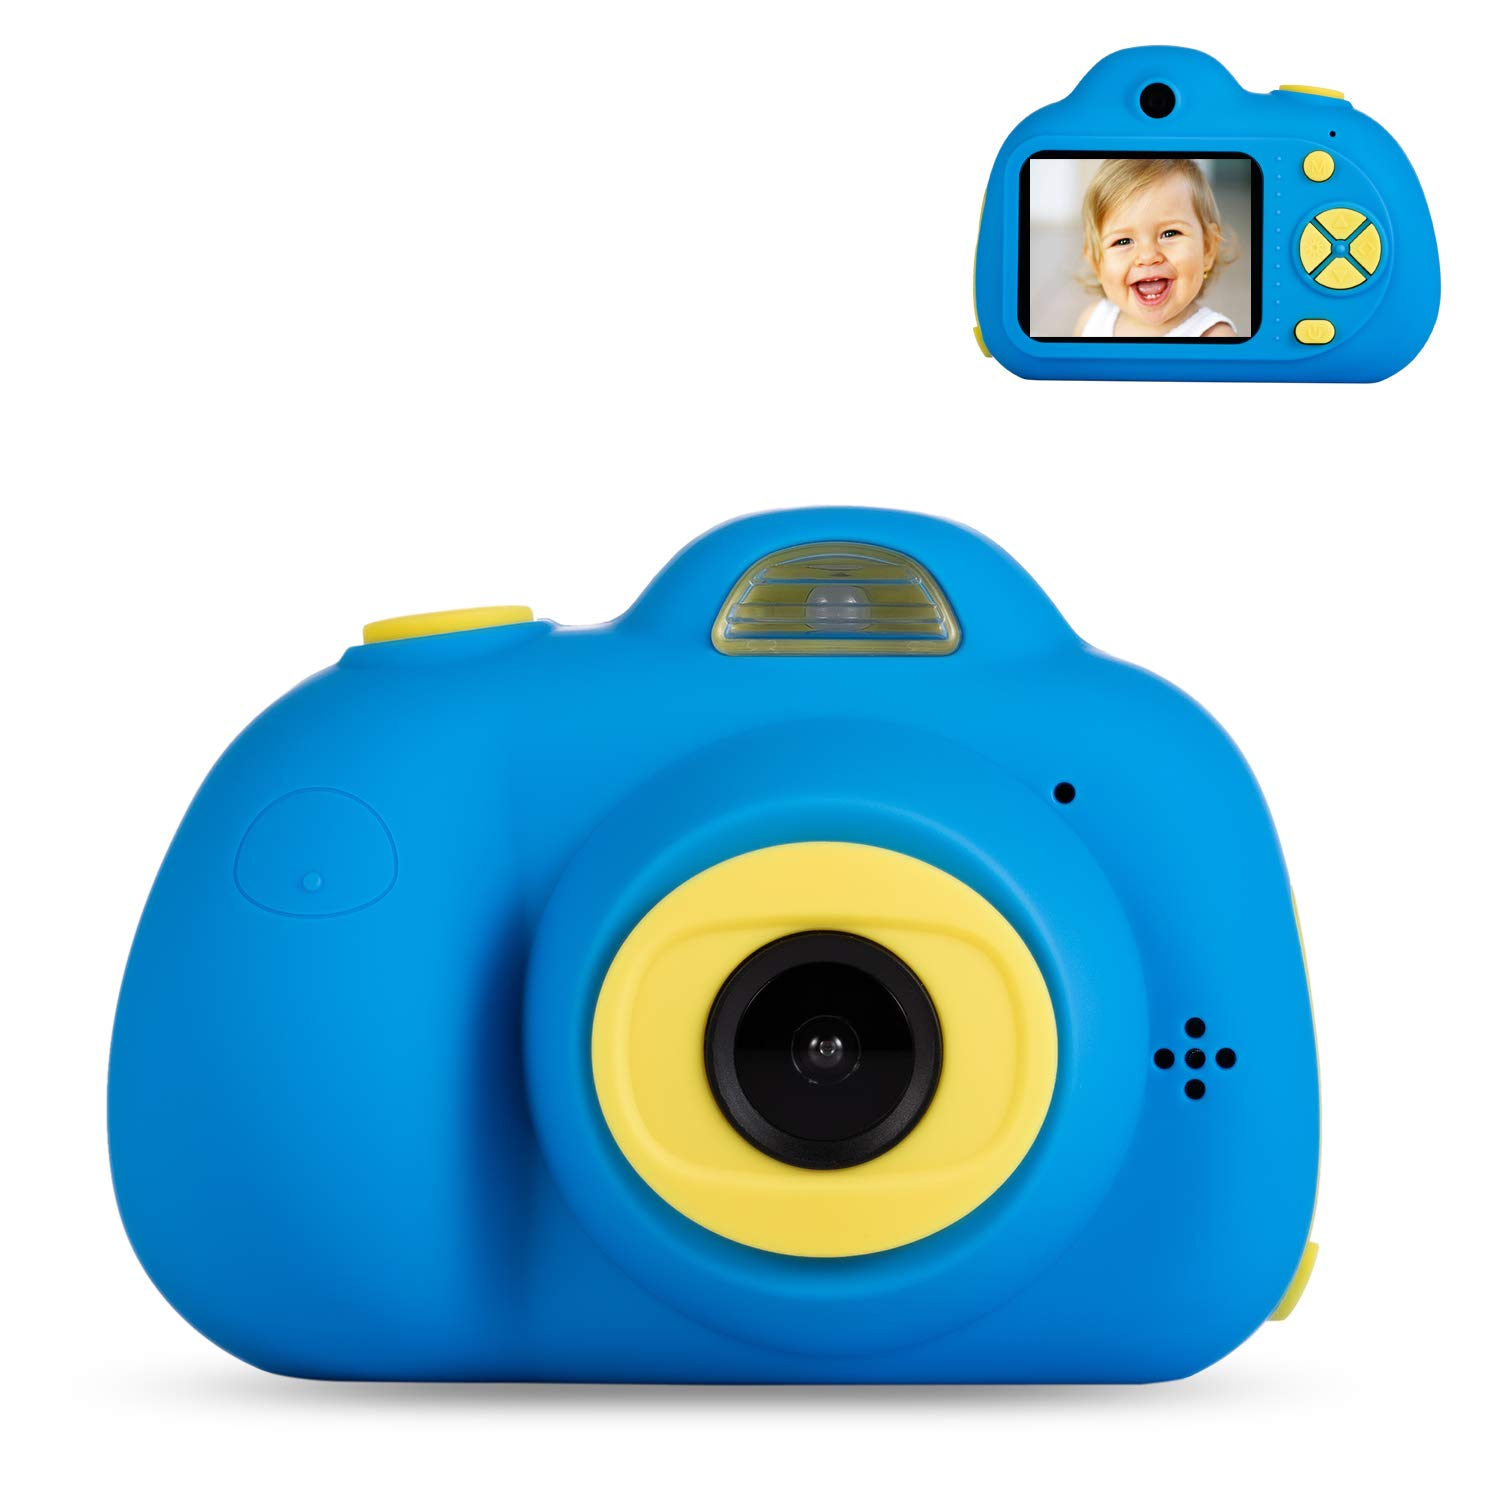 Deeteck Kids Video Camera for Girls Boys, 2 inch Mini Digital Camera,Shockproof Children Camcorders, Toys for 5-9 year old Boys Birthday Gifts with 16GB SD Card(Blue) by Deeteck (Image #1)